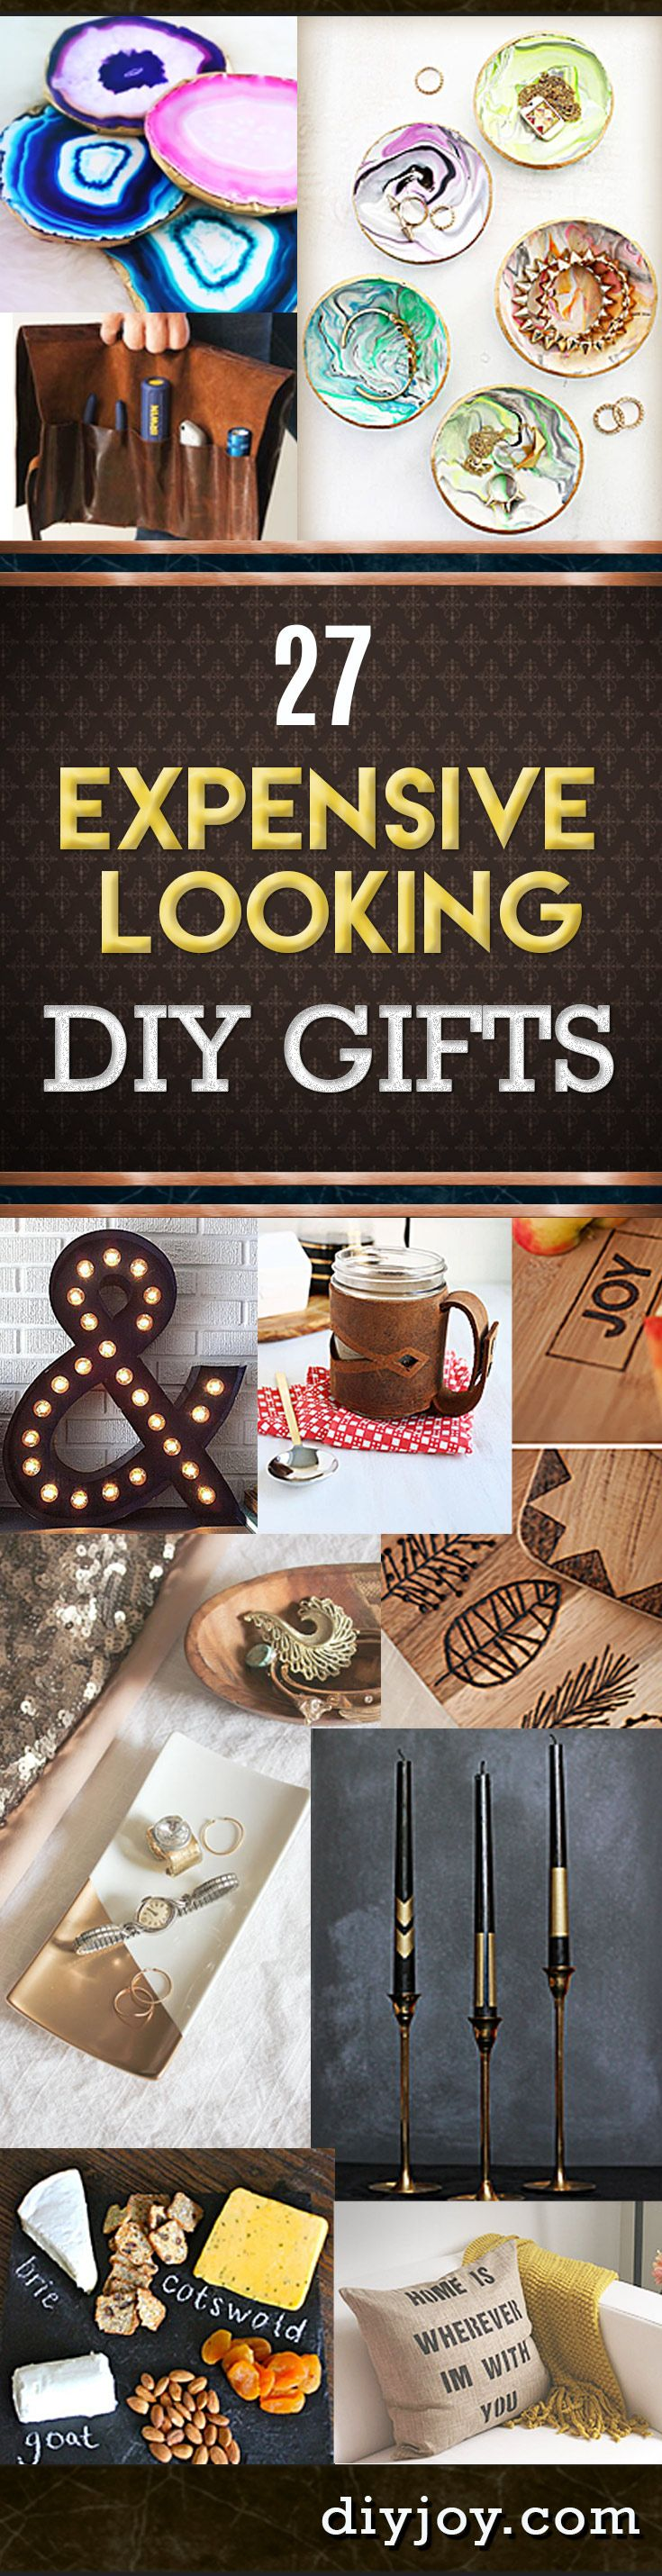 Best 25 diy gifts ideas on pinterest diy christmas gifts 27 expensive looking inexpensive diy gifts solutioingenieria Images